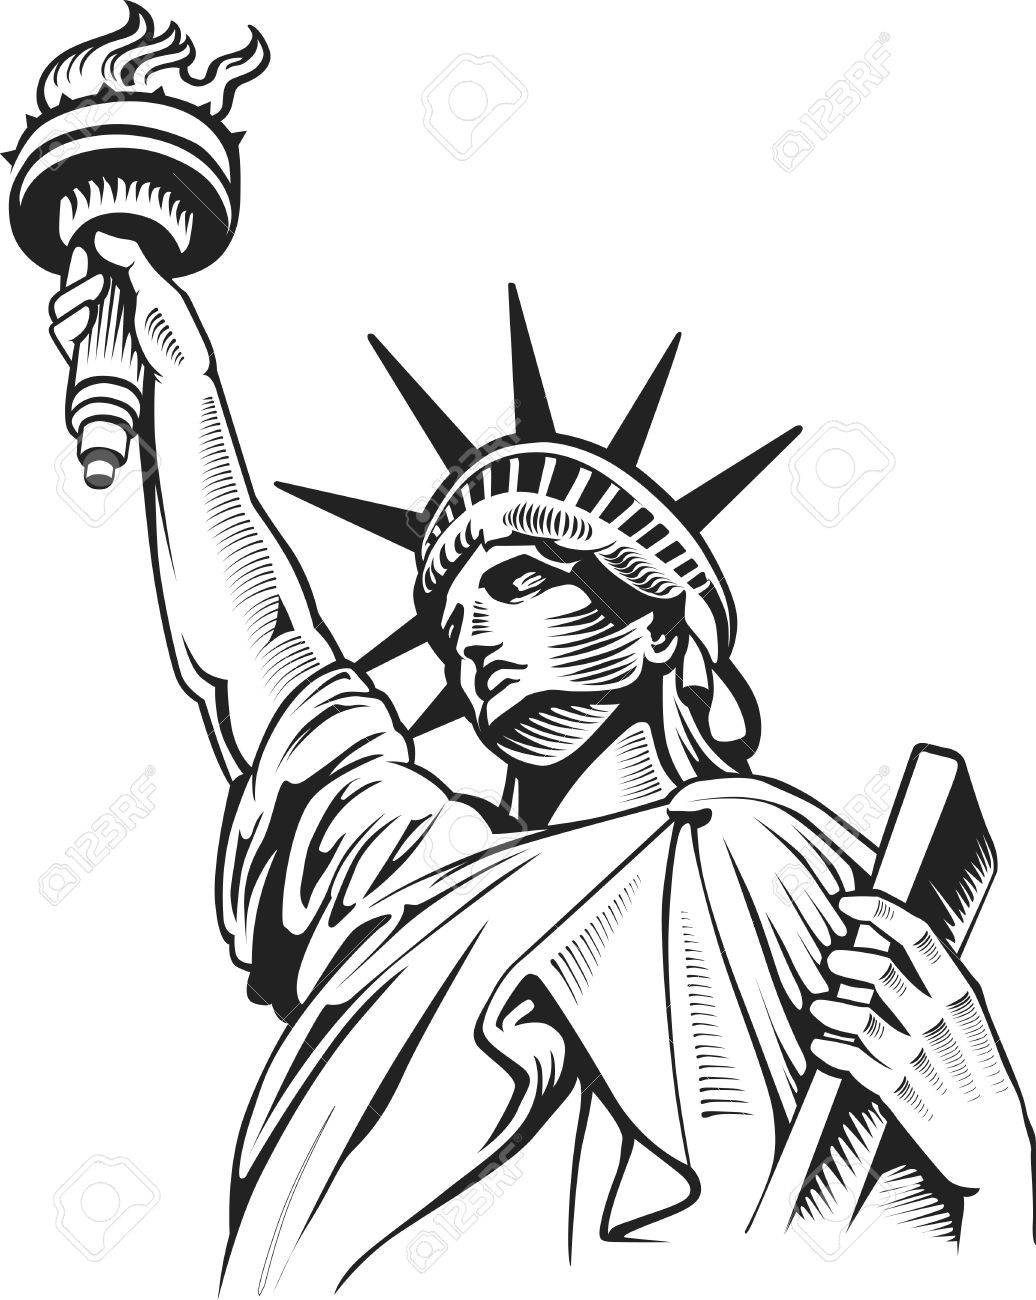 Cartoon Drawing Of The Statue Of Liberty At Getdrawings